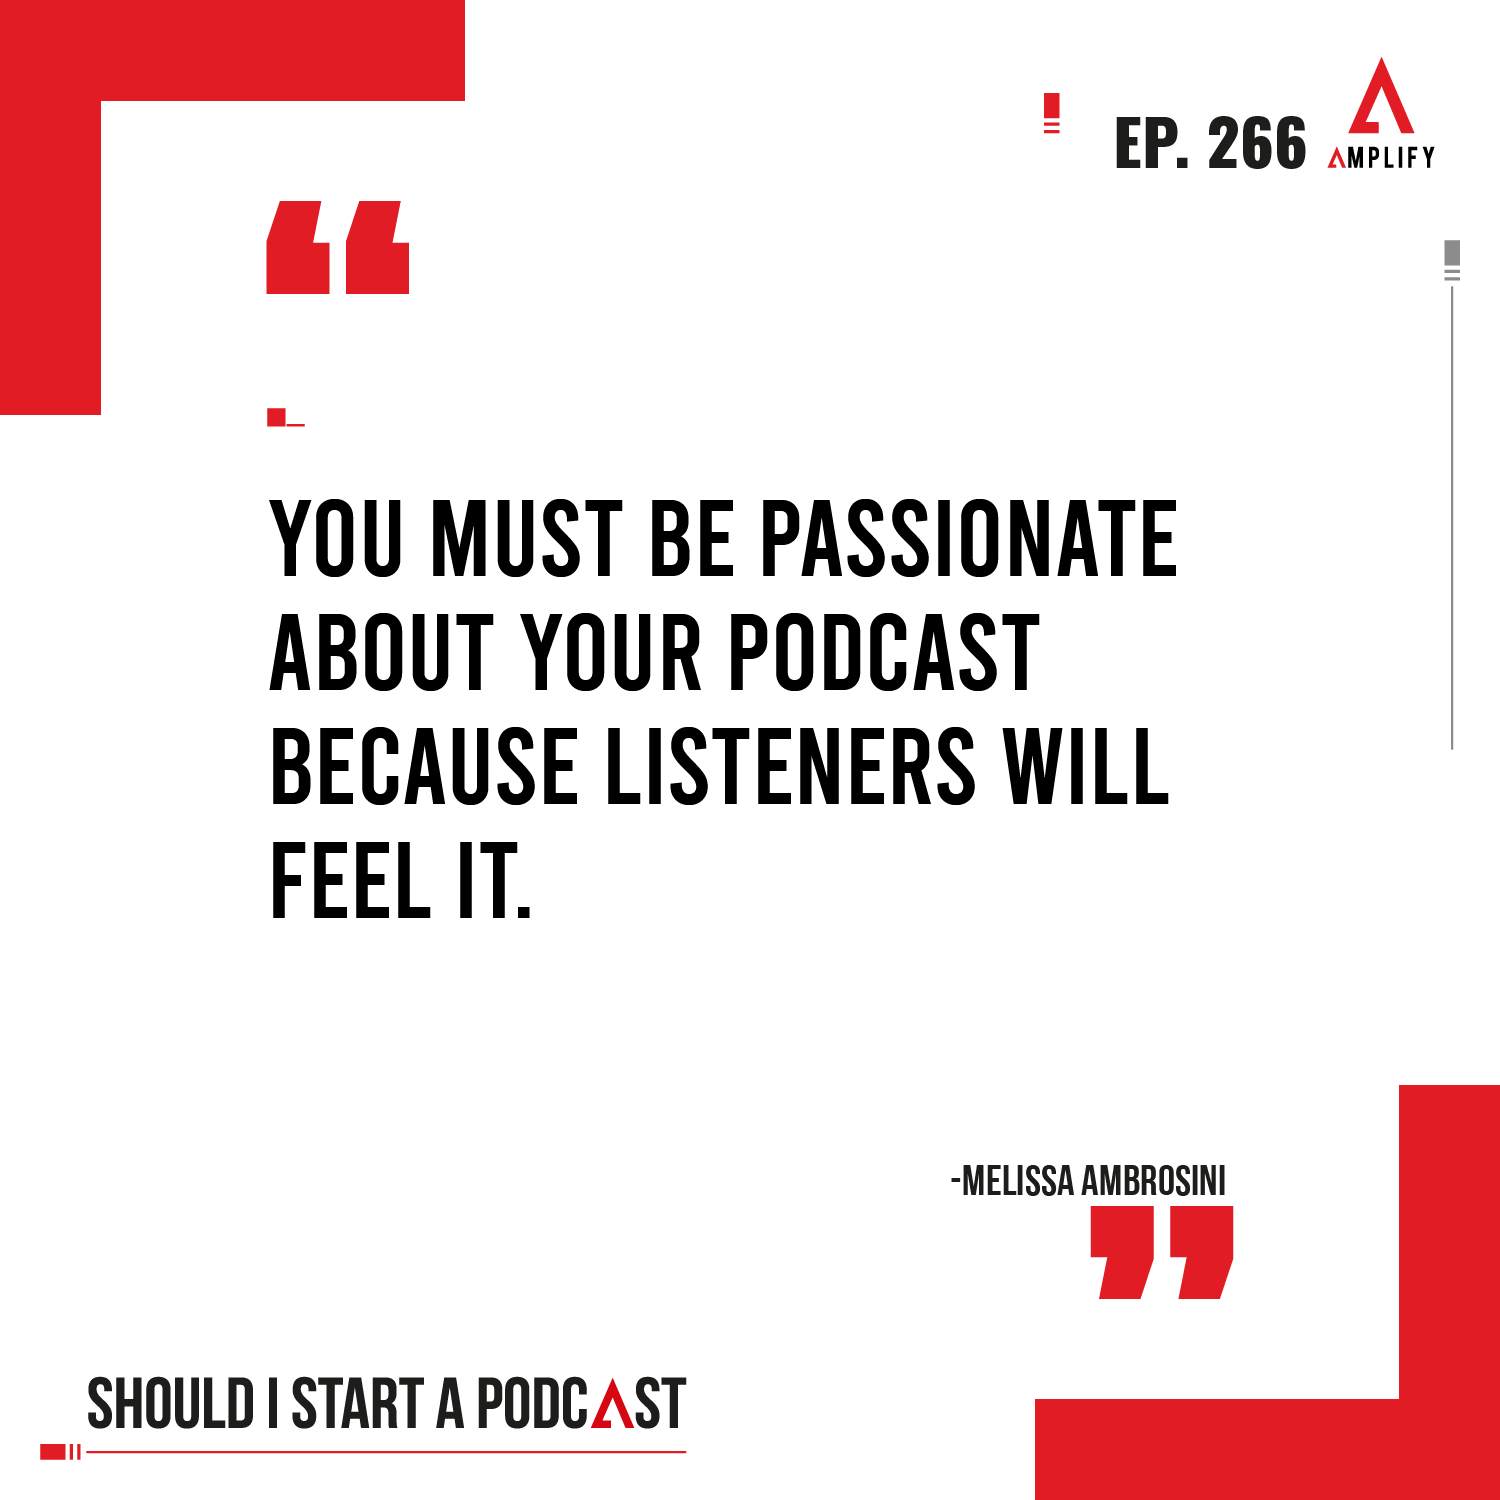 decorative image with the quote You must be passionate about your podcast because listeners will feel it. by melissa Ambrosini